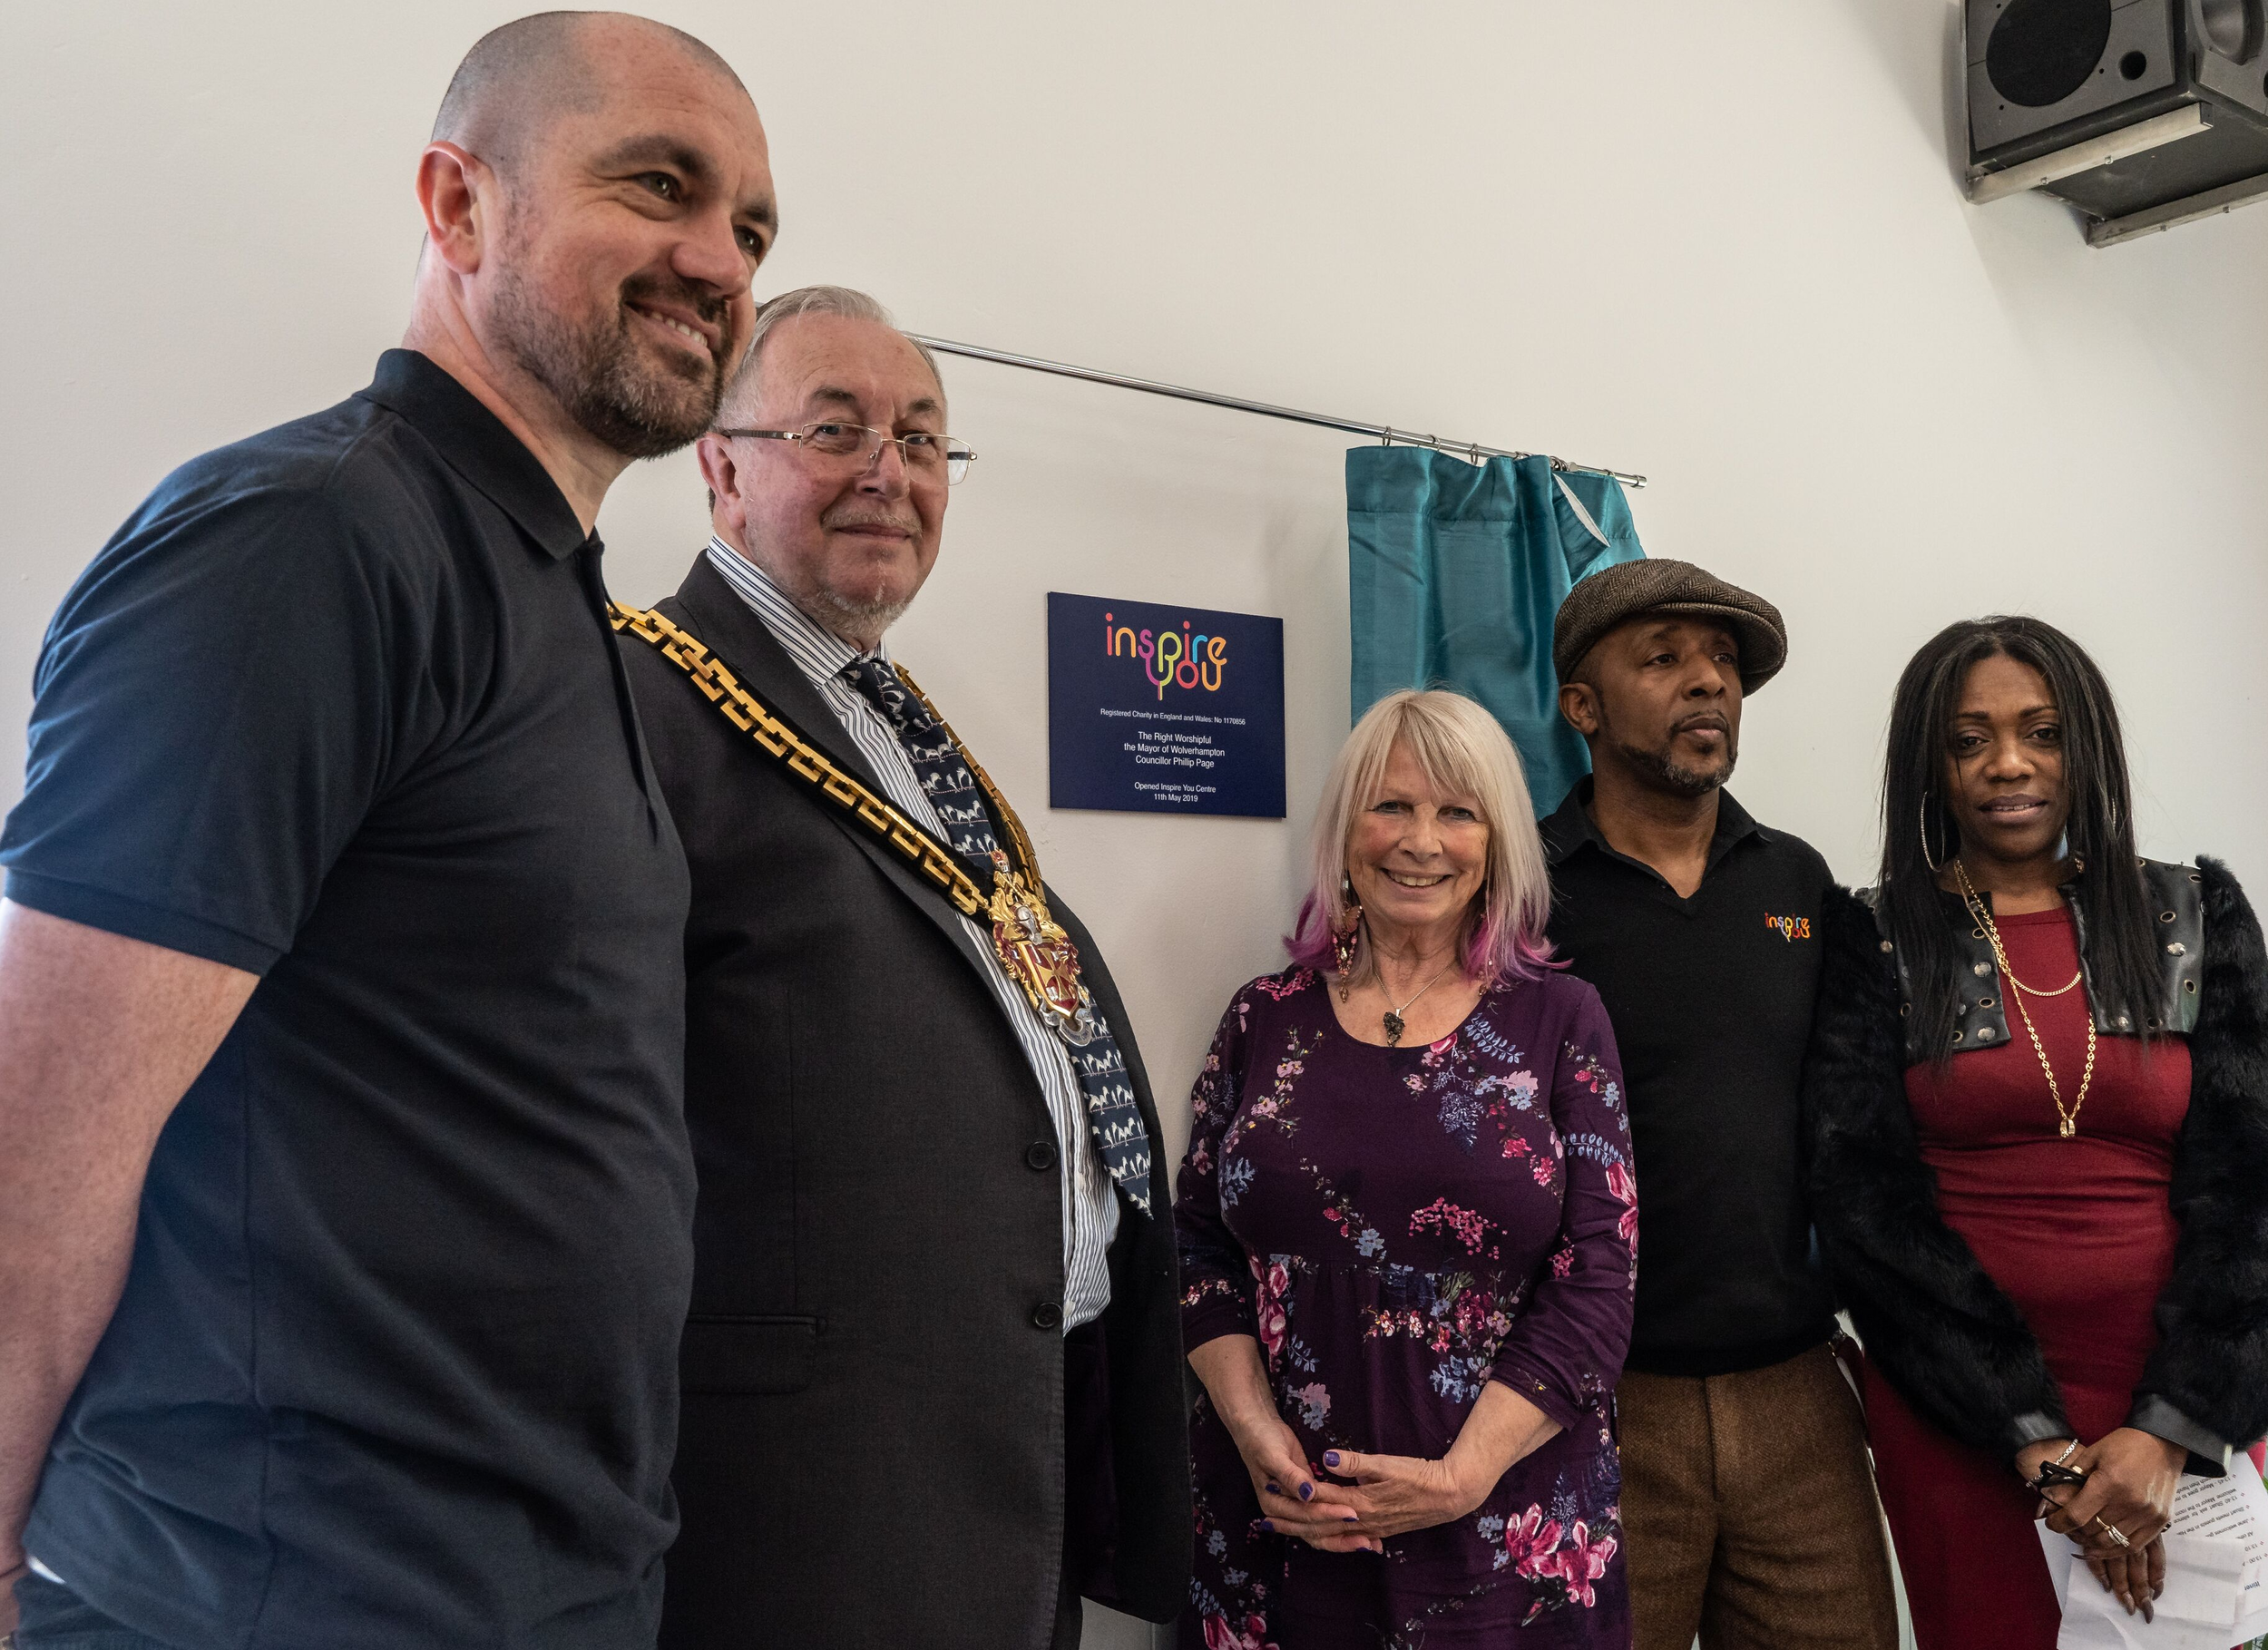 The Mayor opens the Inspire You Centre 11 May 2019 - Trustees Stuart Grosvenor and Jane Noble Knight with Inspire You founder, Leslie & Carol Fairclough with the Mayor of Wolverhampton Councillor Phillip Page